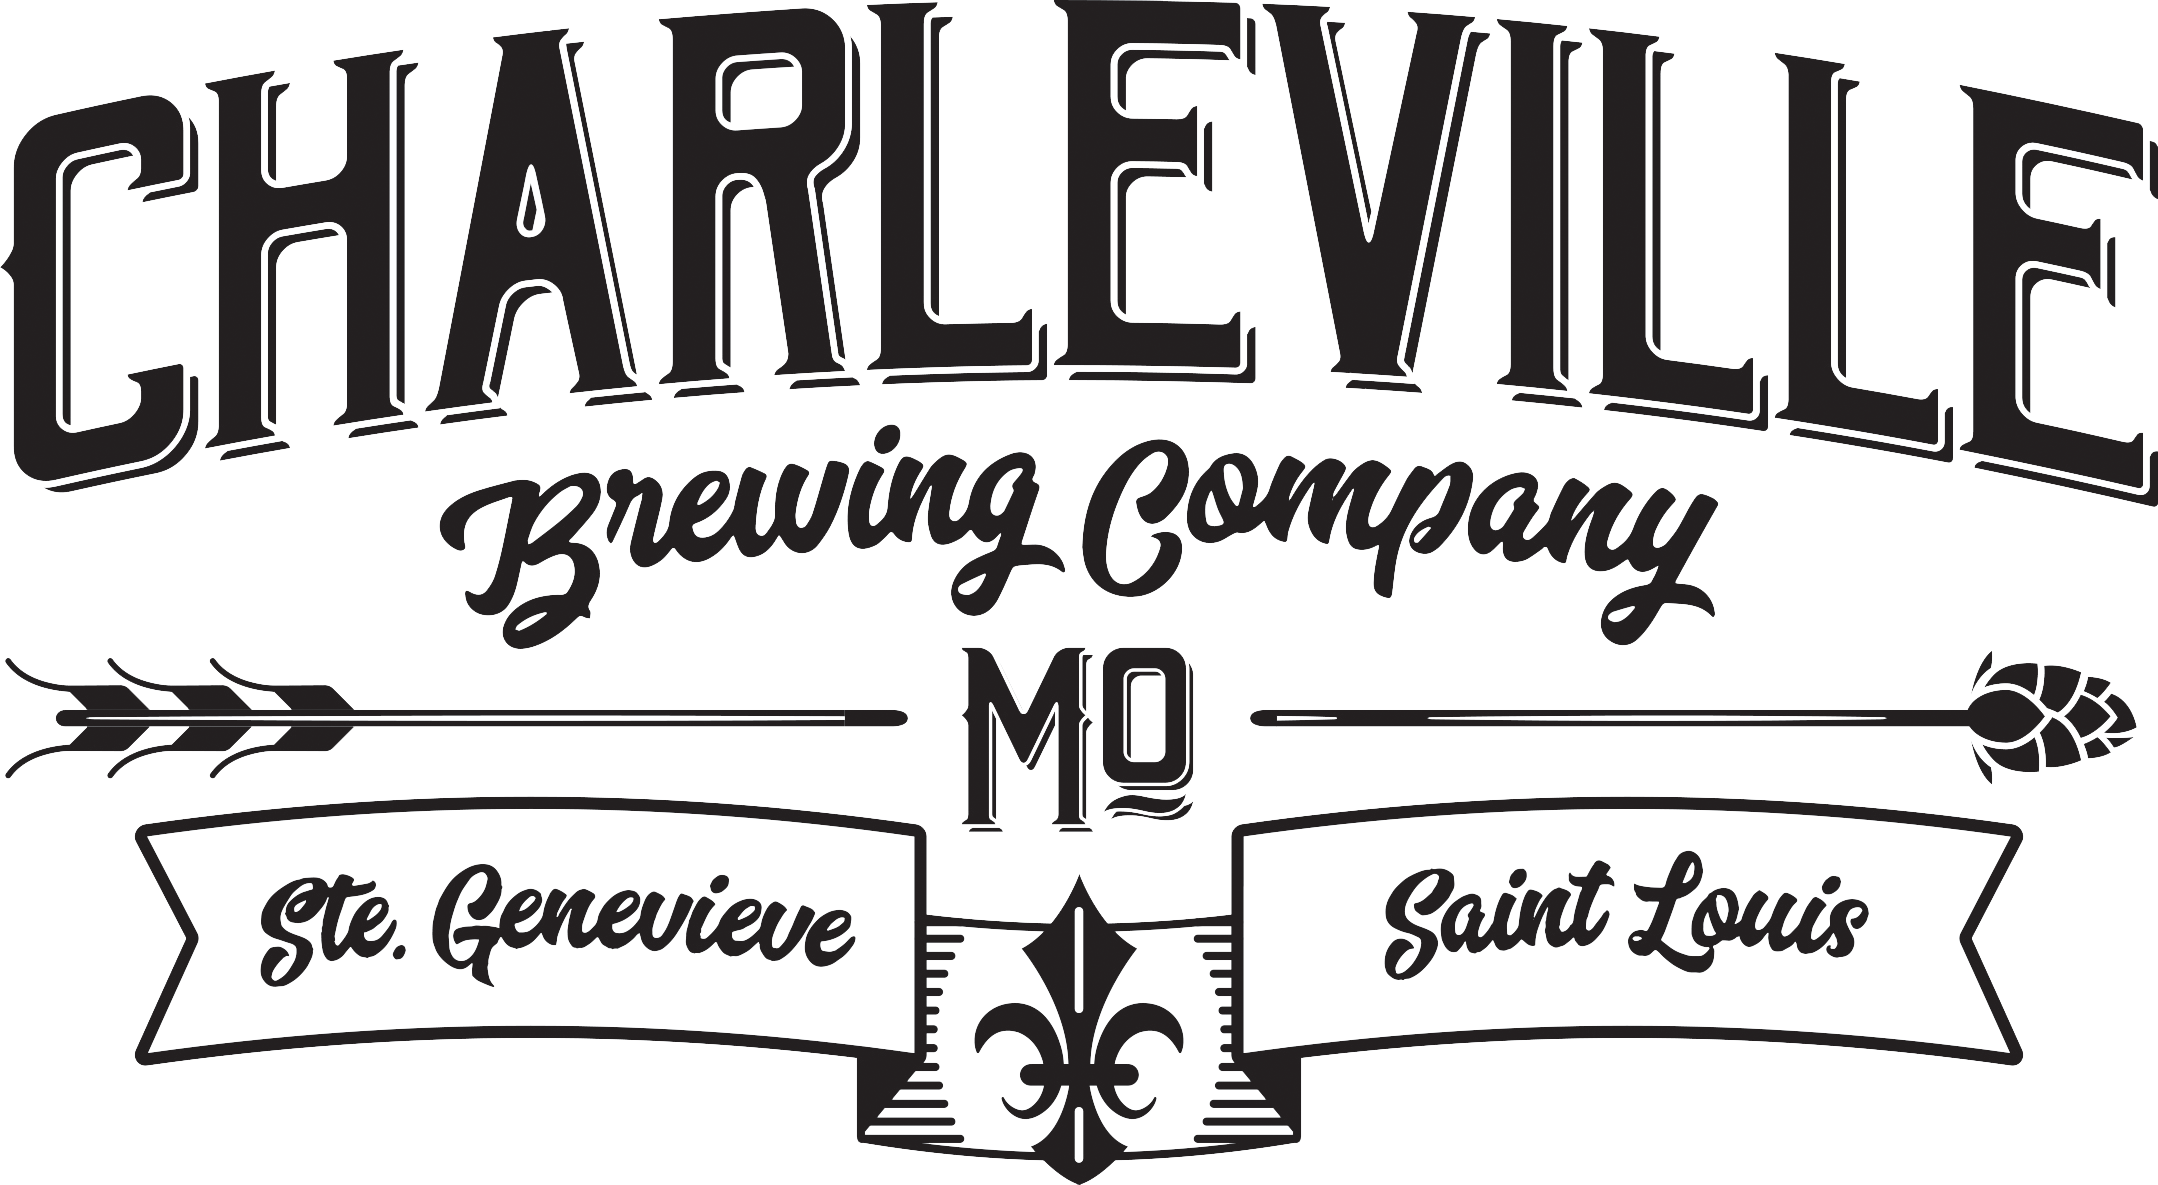 Charleville Brewing Company & Tavern